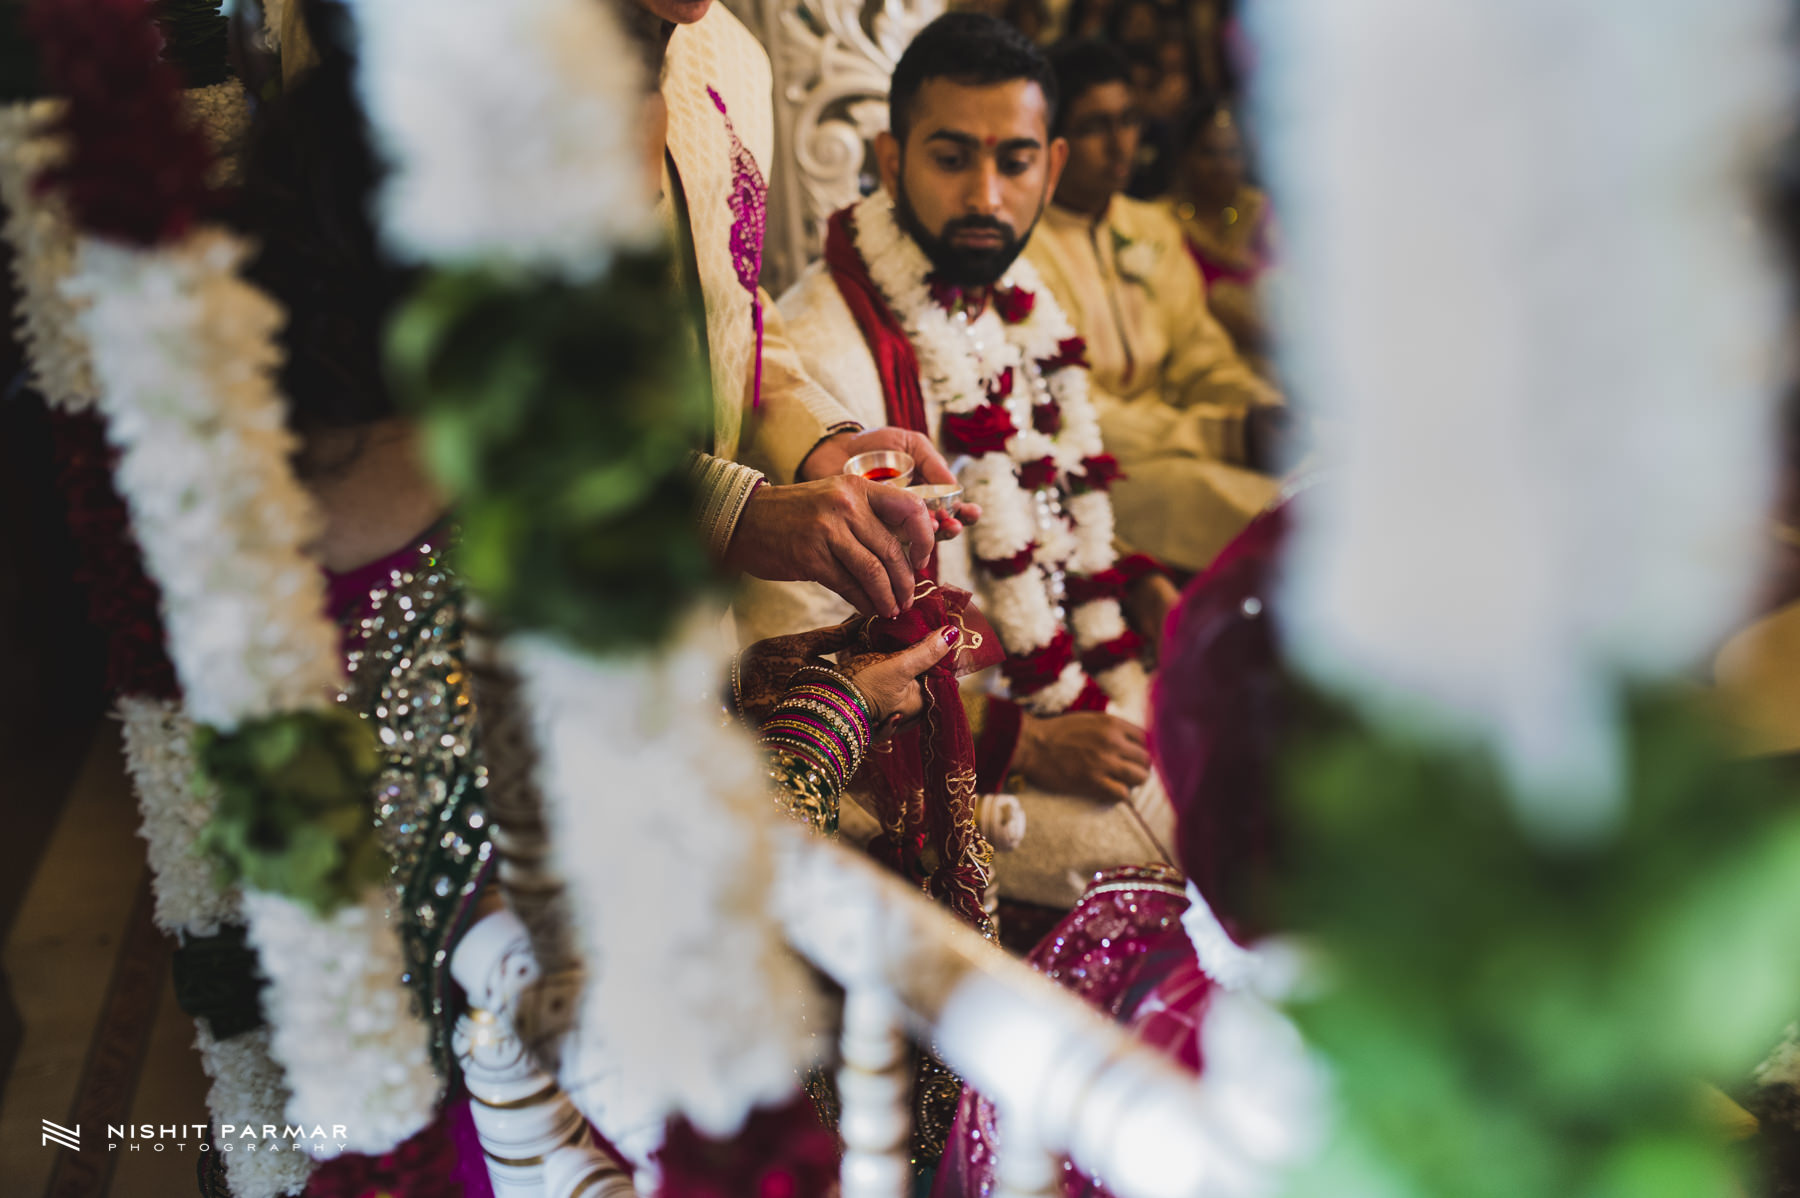 Hindu Wedding Tying the Bride and Groom Together